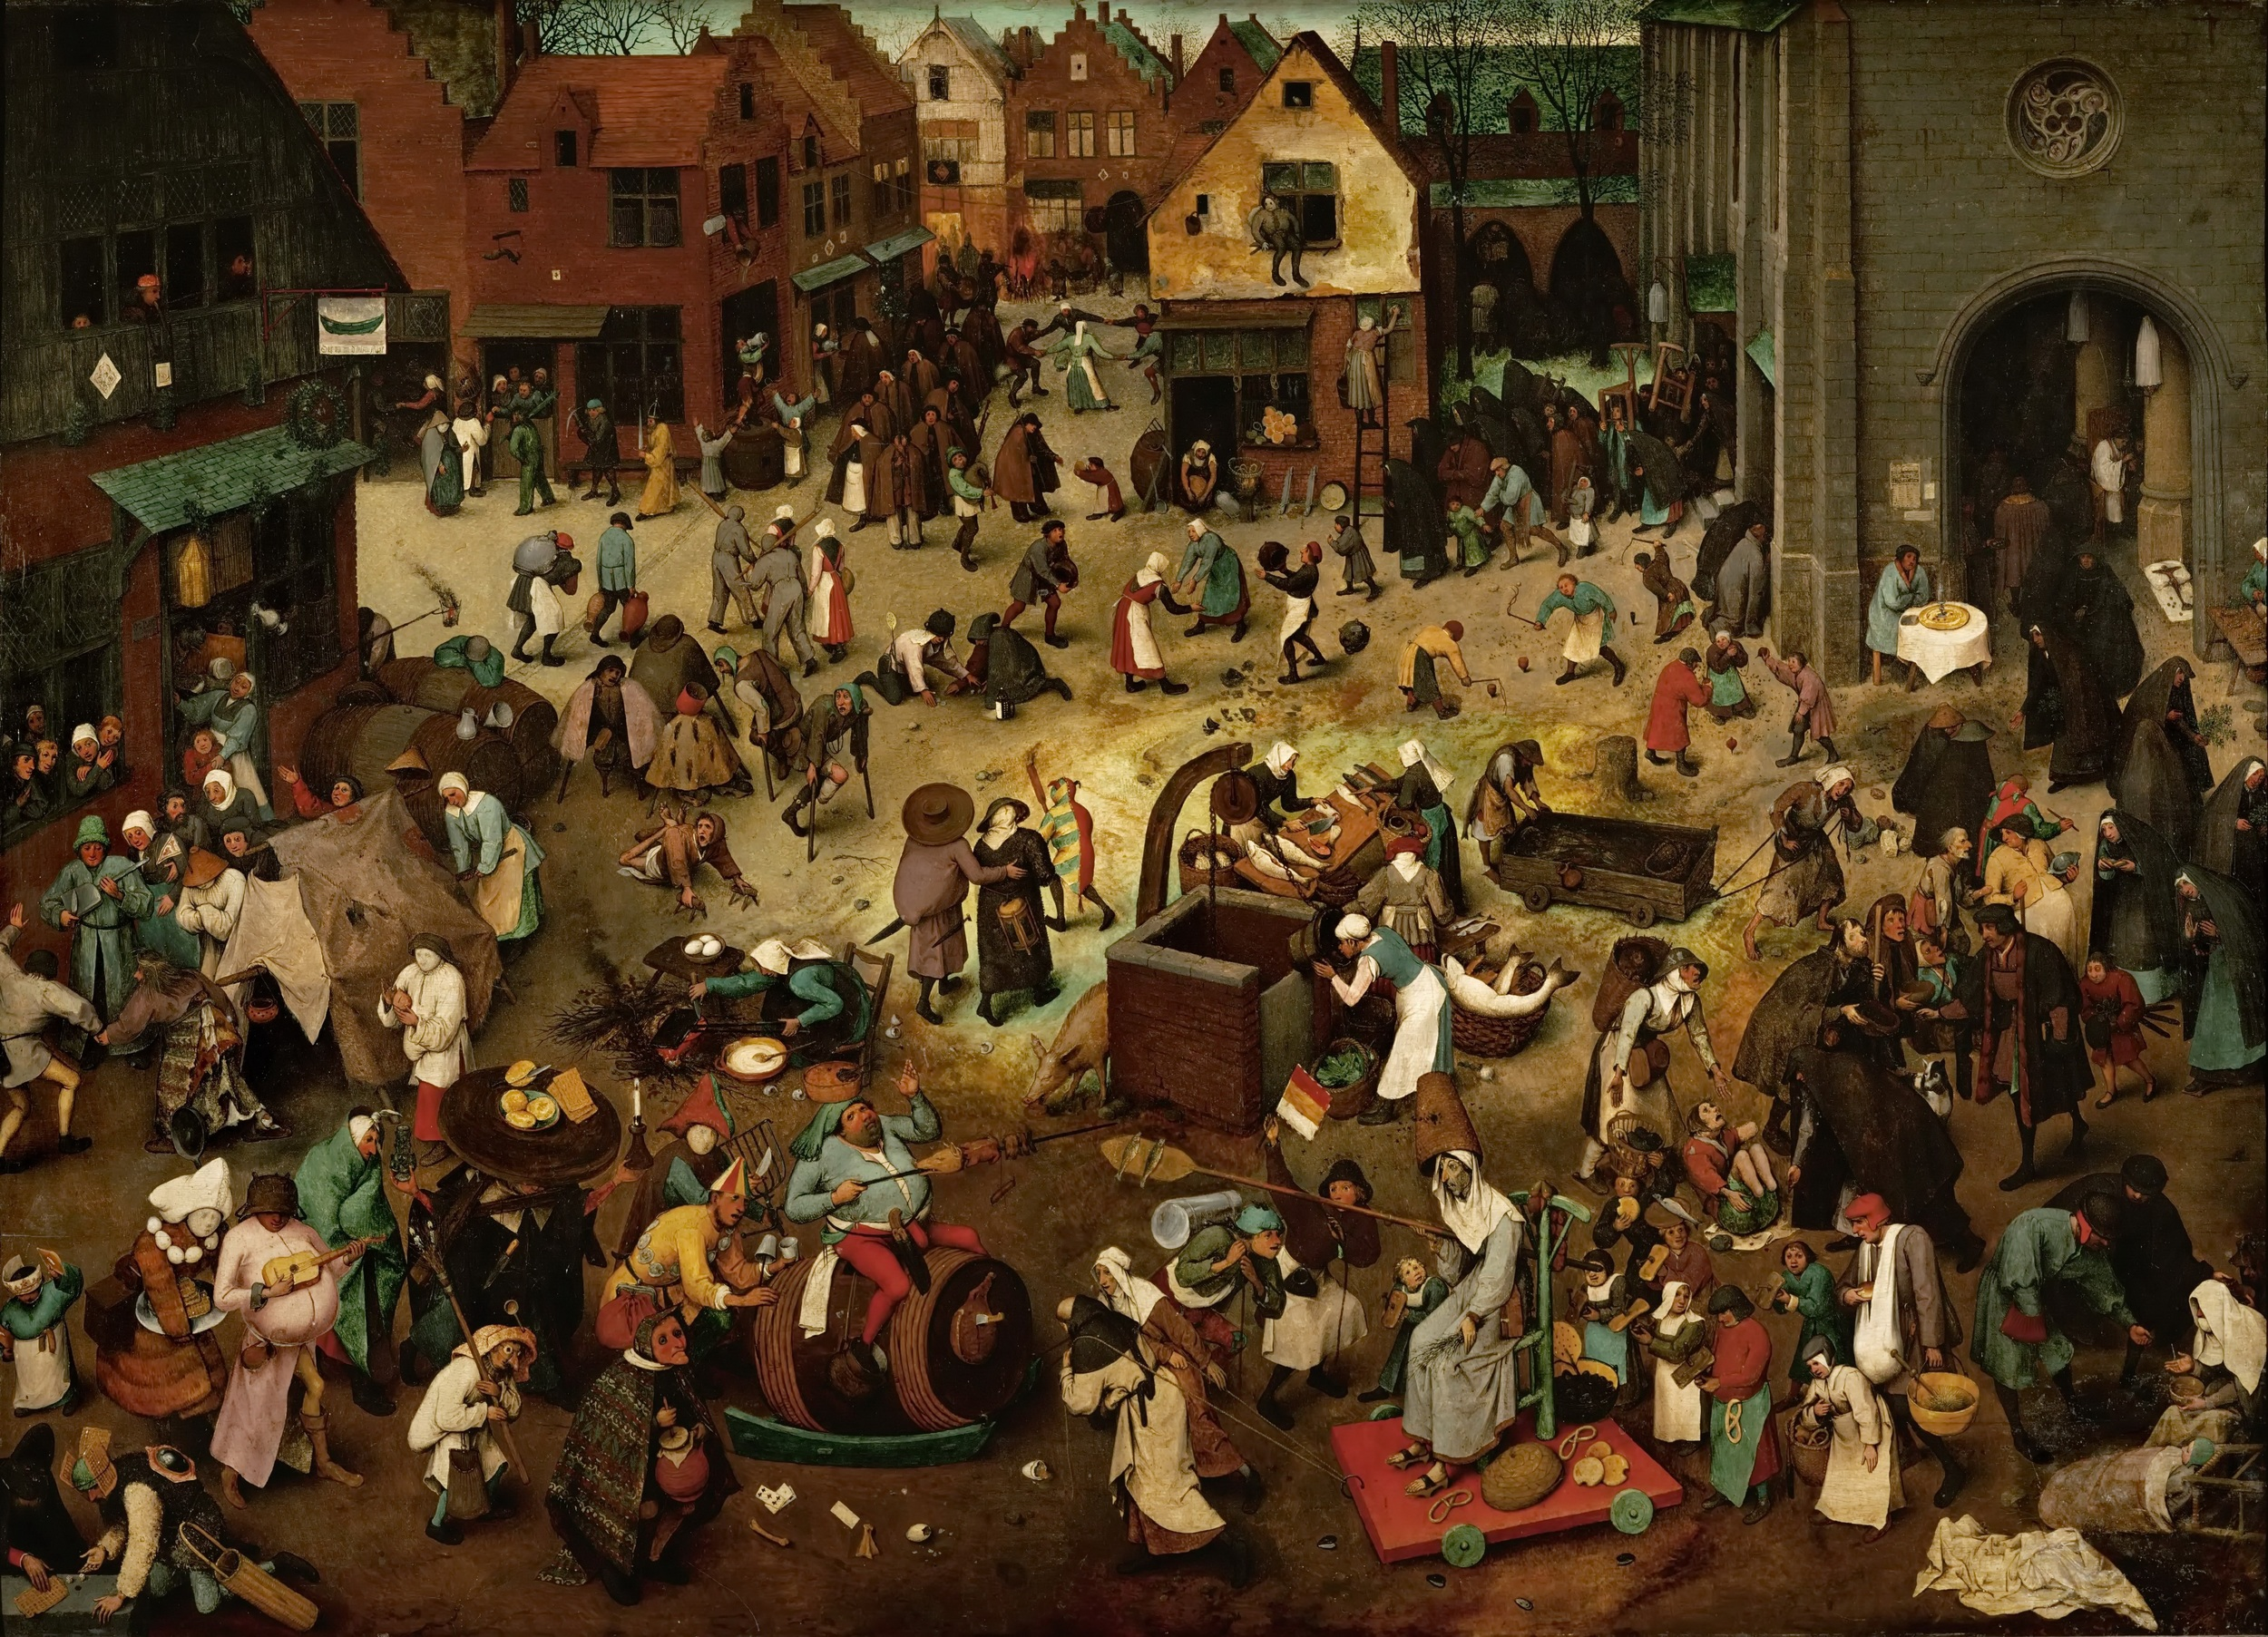 Pieter Bruegel, The fight between carnival and lent